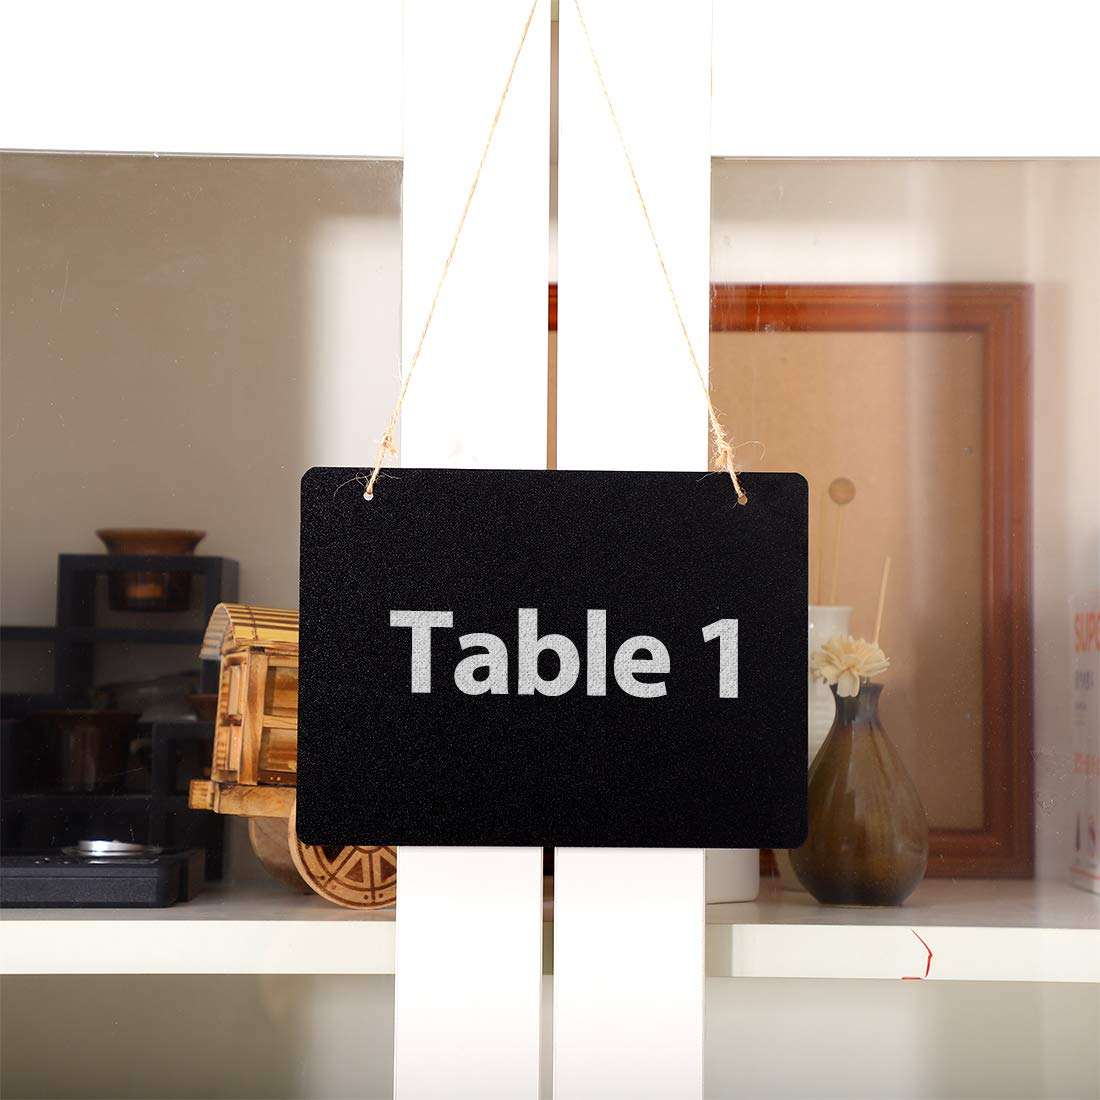 uxcell 2pcs Mini Chalkboards Signs with Hanging Rope Wood Rectangle Design Chalkboard Tag Board Signs Table Number Reminder Price Tag